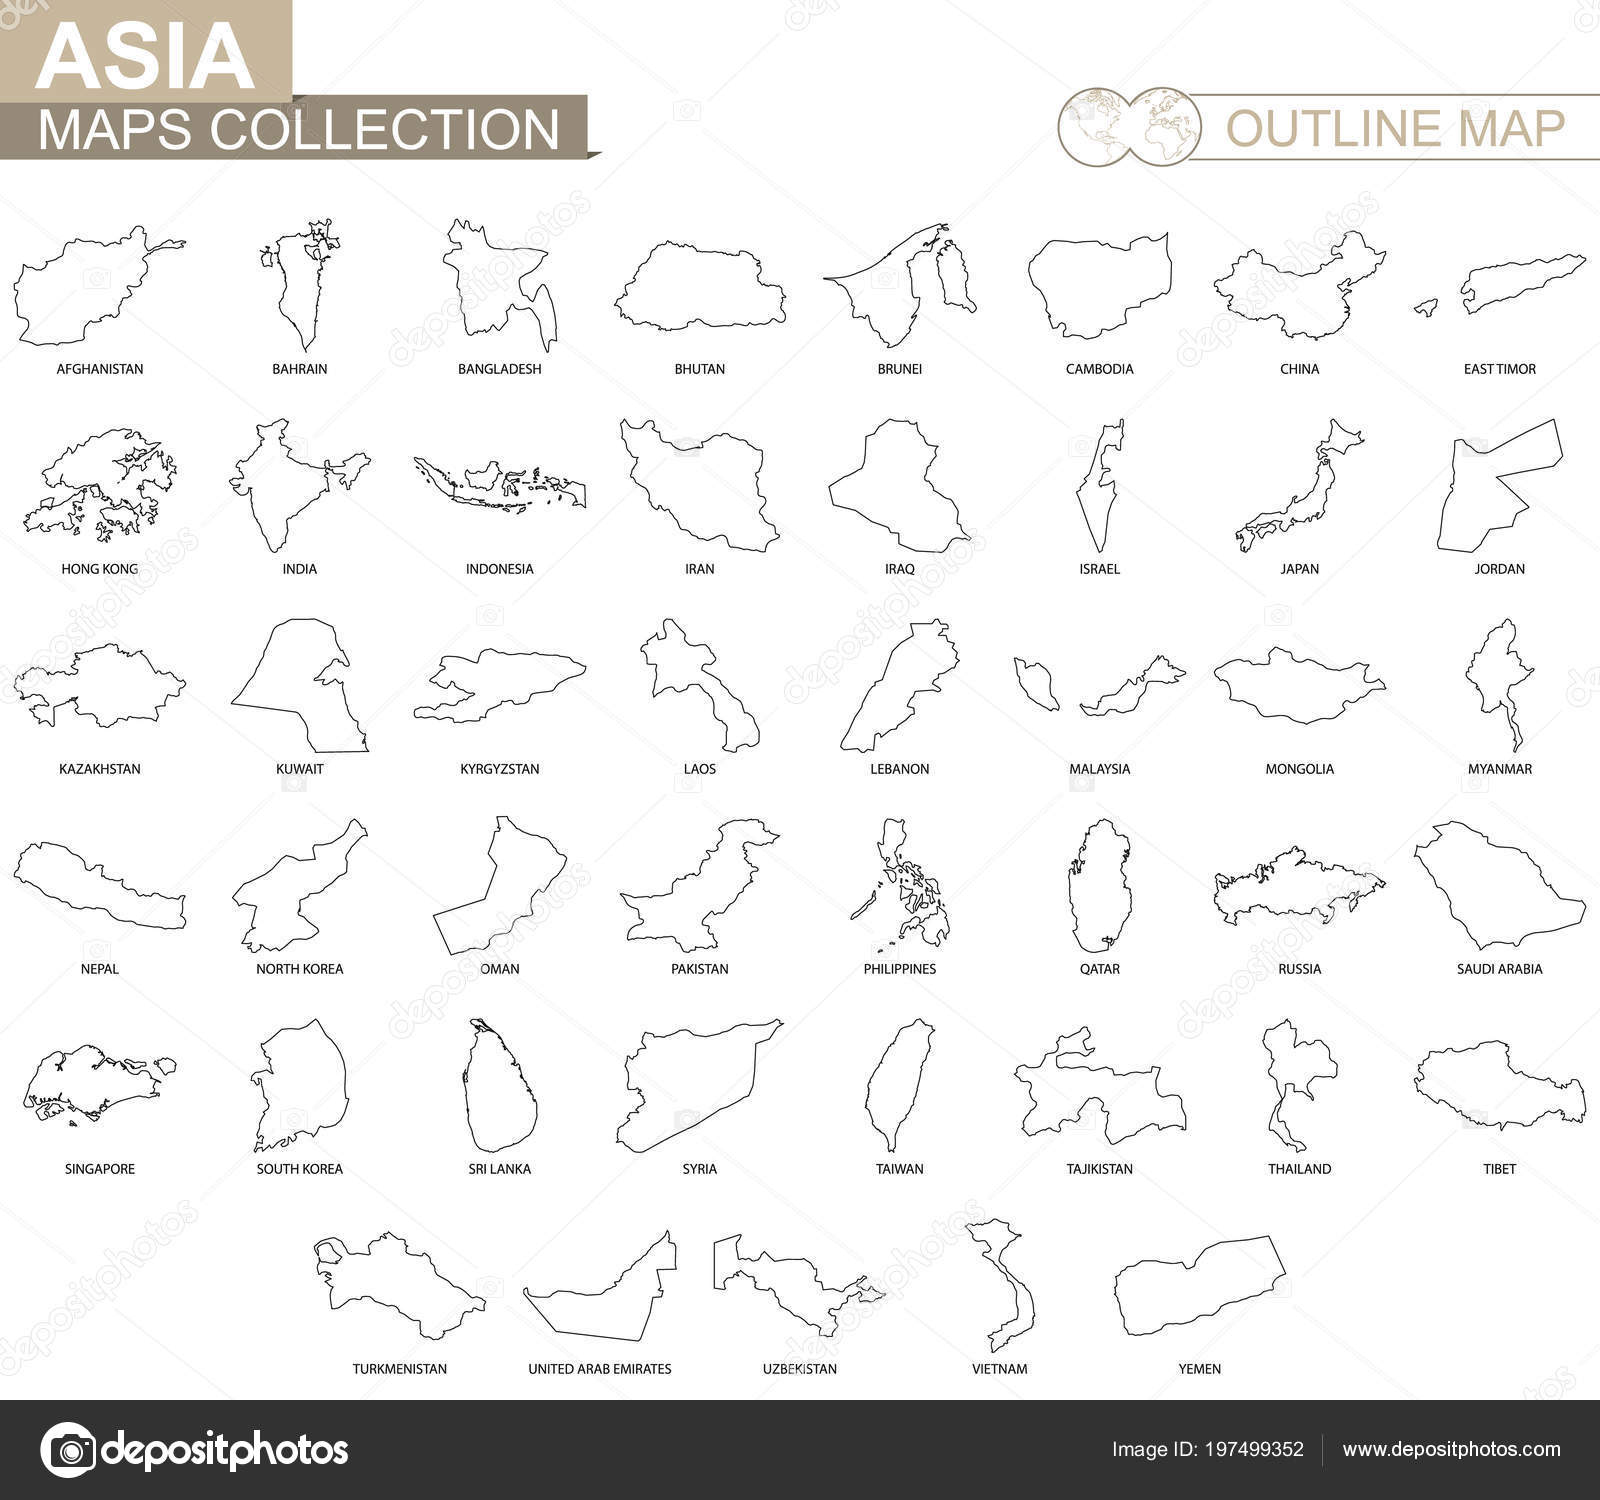 Outline Map Of Asia.Outline Maps Asian Countries Collection Black Lined Vector Map